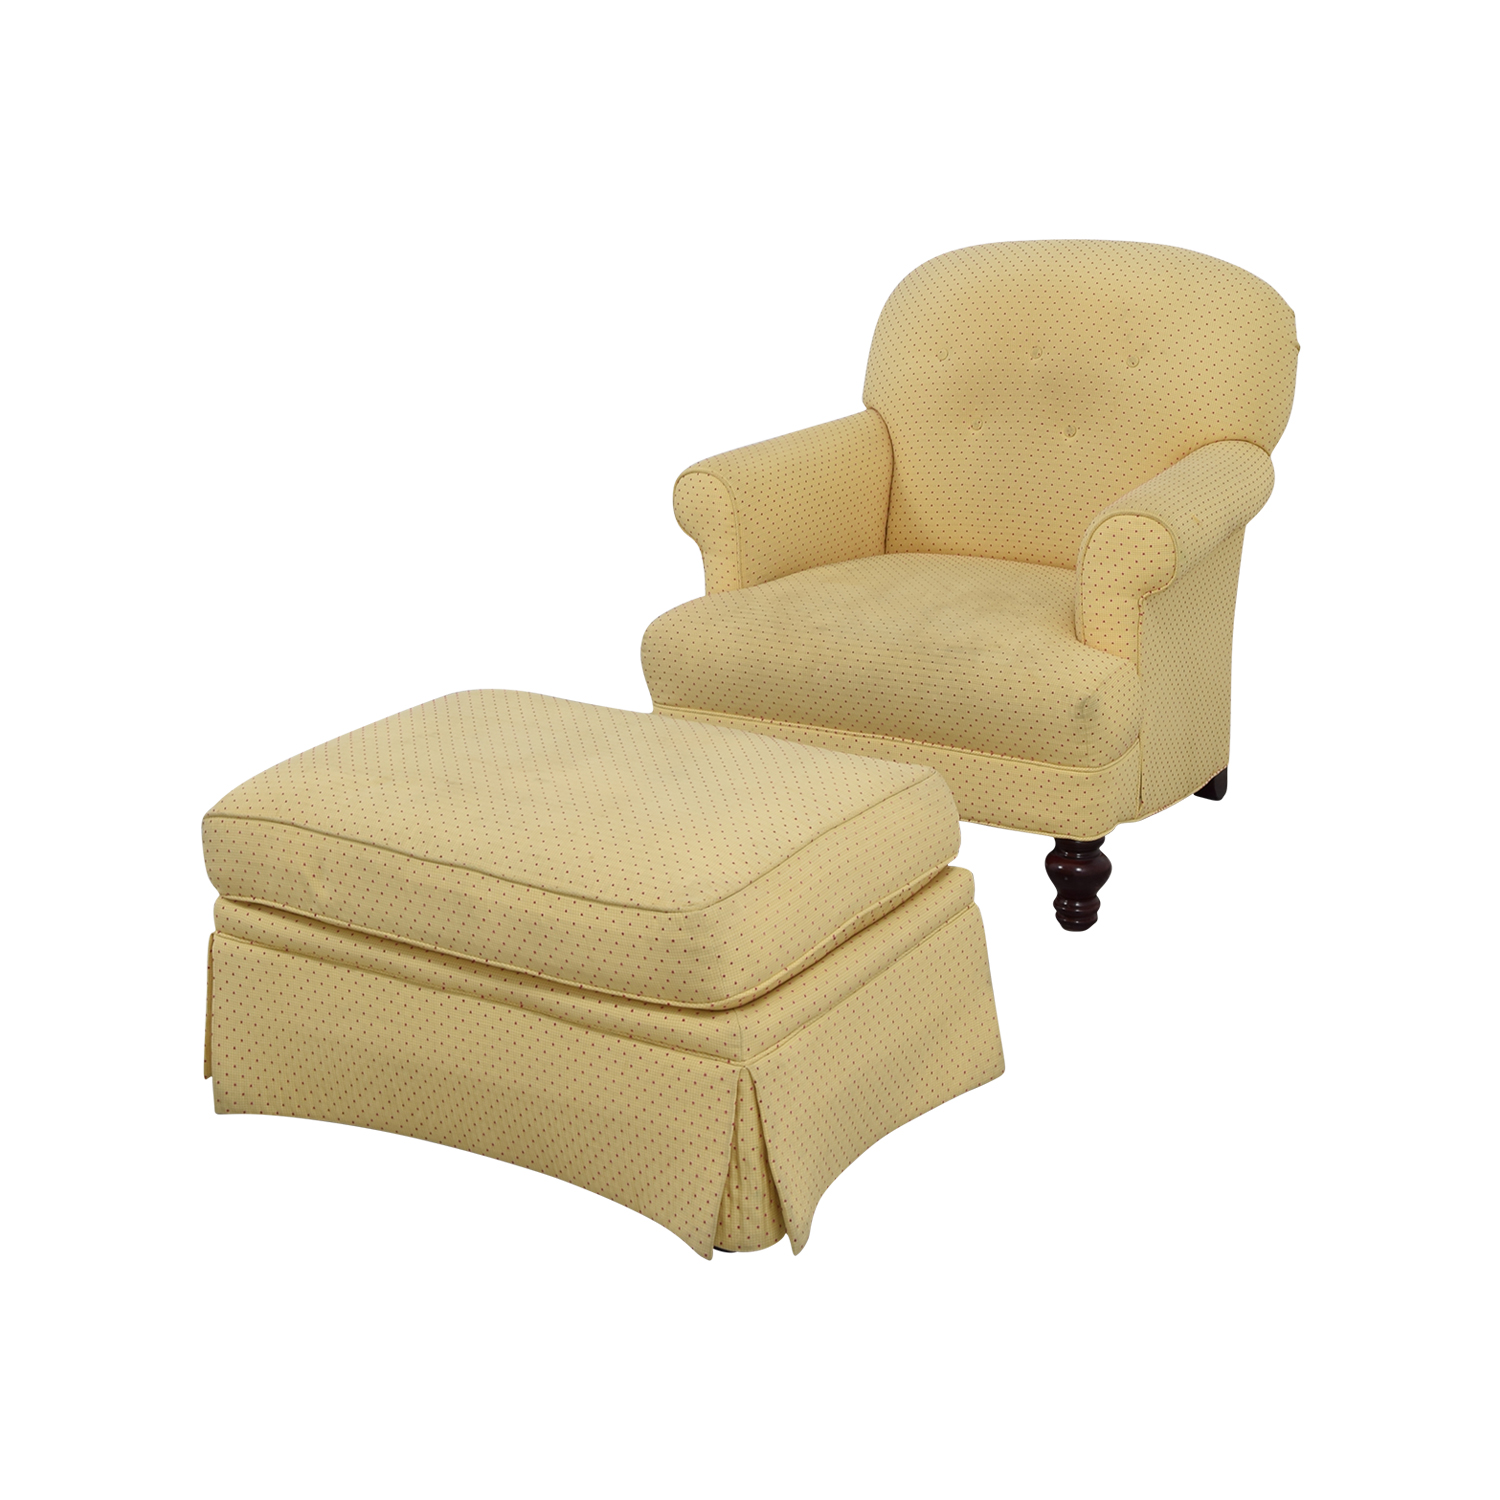 90% OFF - Yellow Arm Chair with Ottoman / Chairs